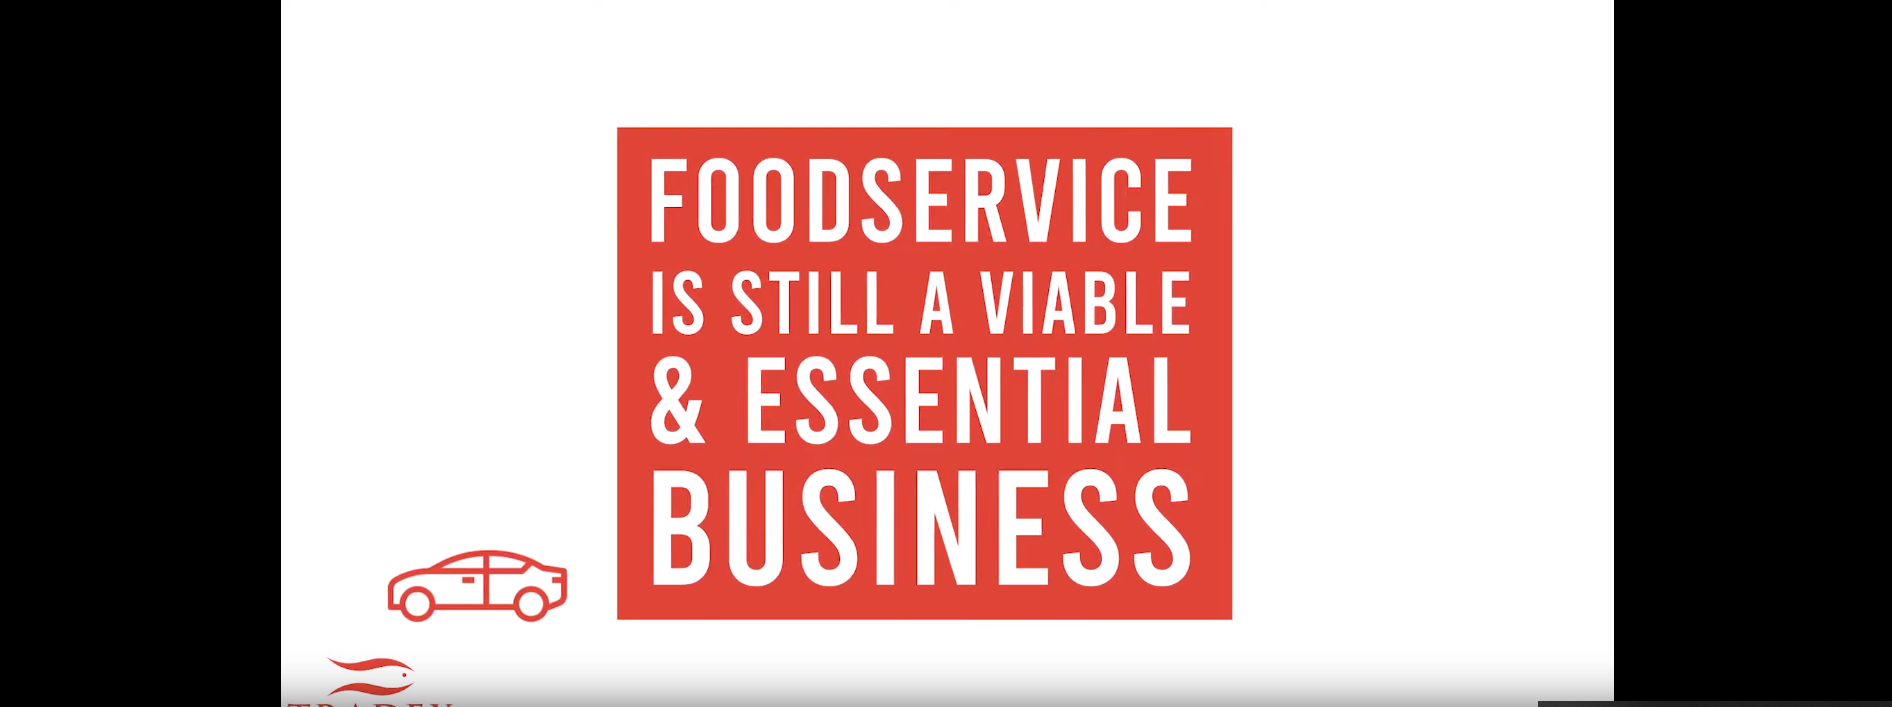 Foodservice is still a viable & essential industry